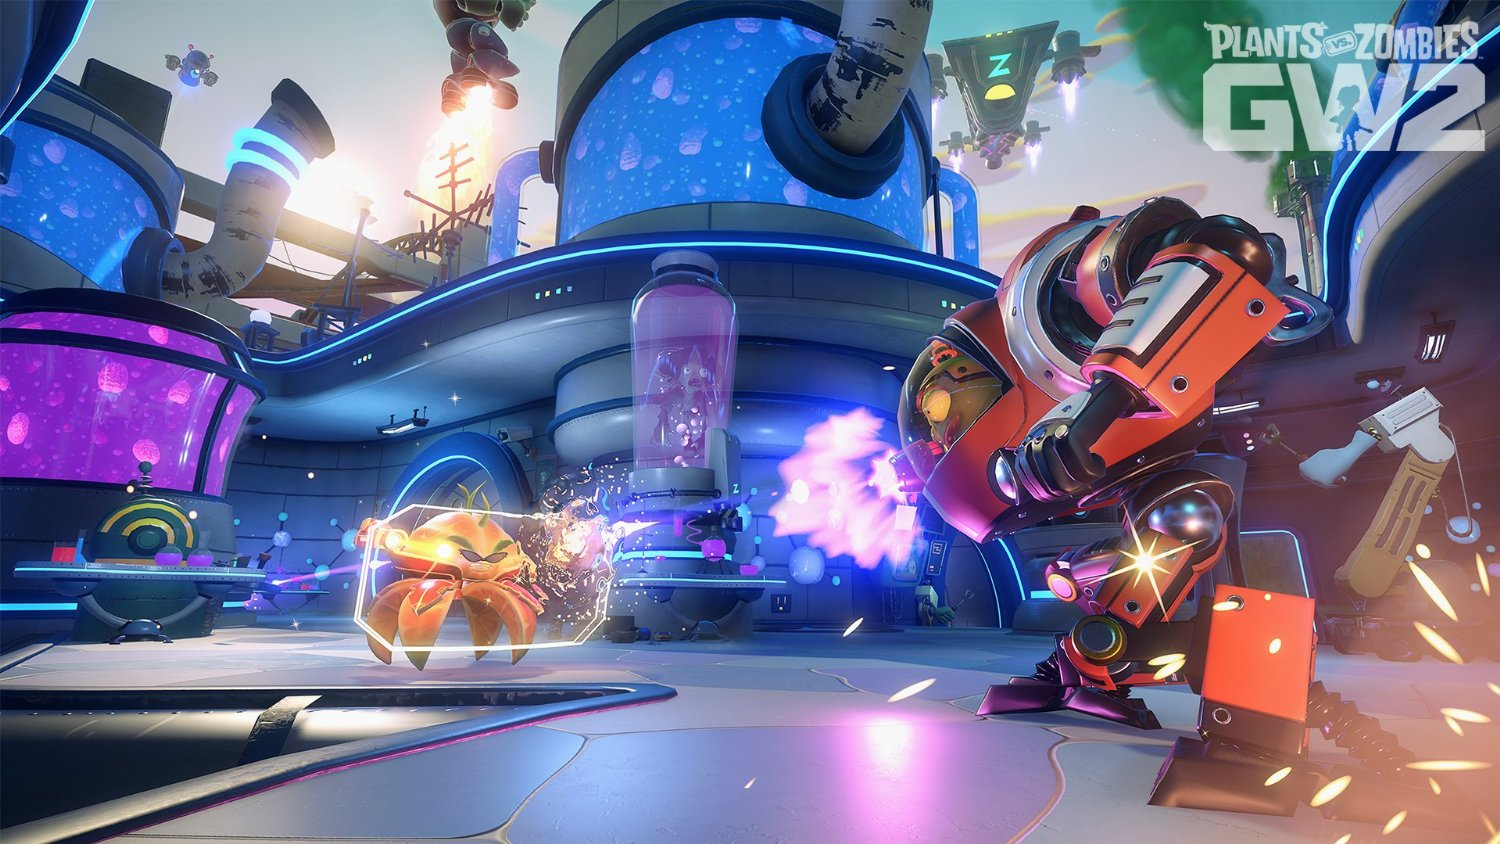 Geek review plants vs zombies garden warfare 2 geek - Plants vs zombies garden warfare 2 review ...